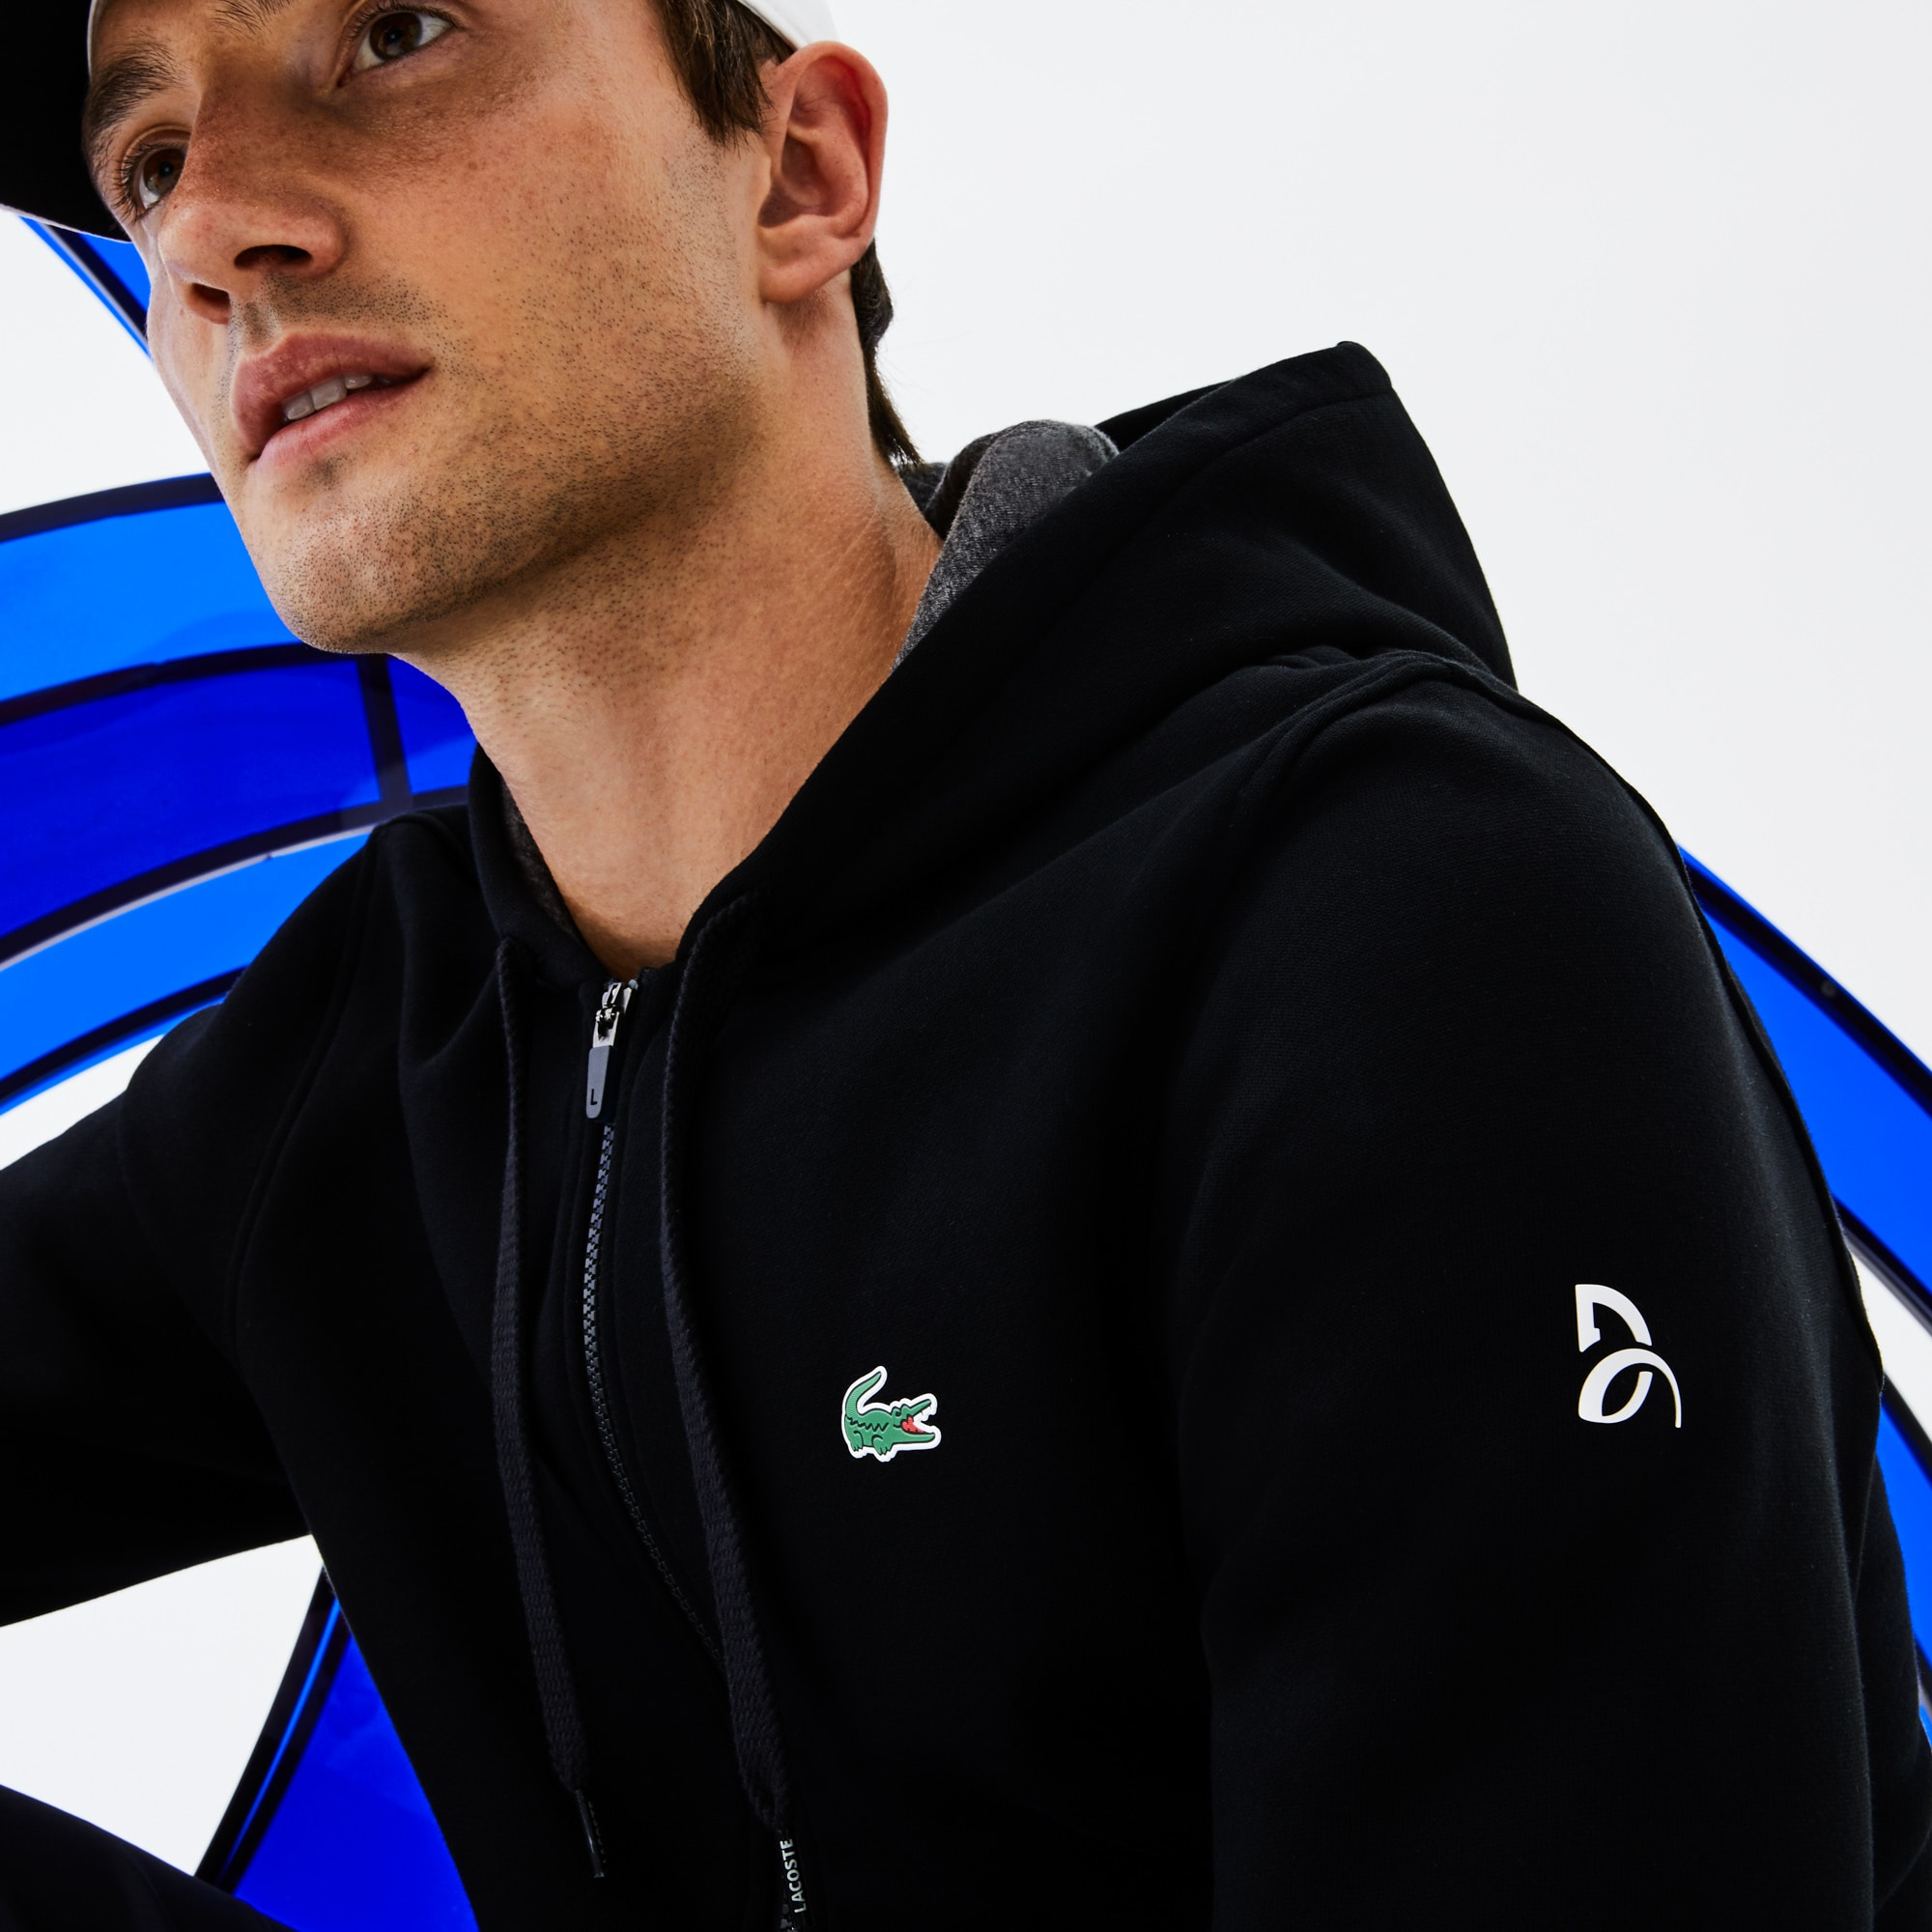 Men's SPORT Technical Fleece Hooded Zip Sweatshirt -  x Novak Djokovic Off Court Premium Edition